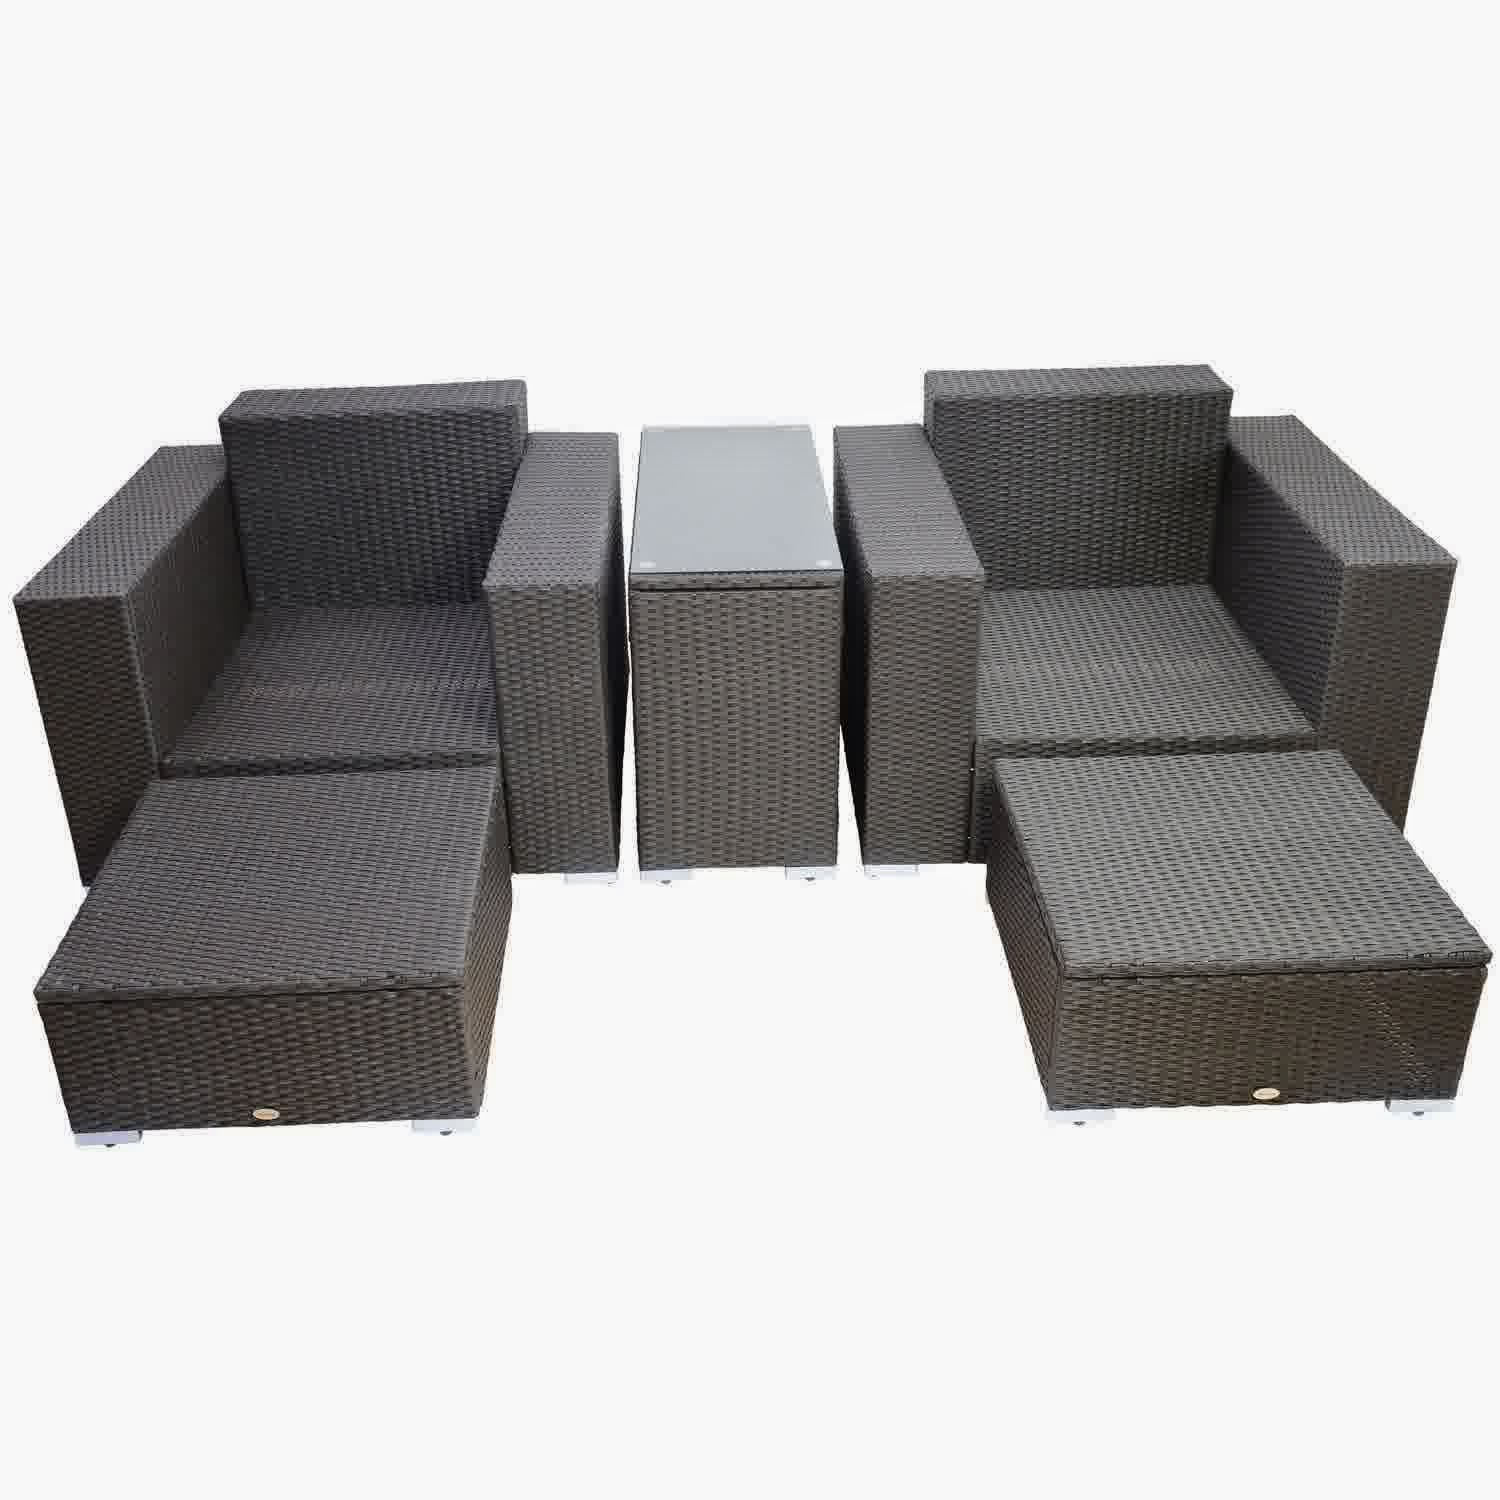 Discount Until 60% Outsunny 5pc Outdoor PE Rattan Wicker